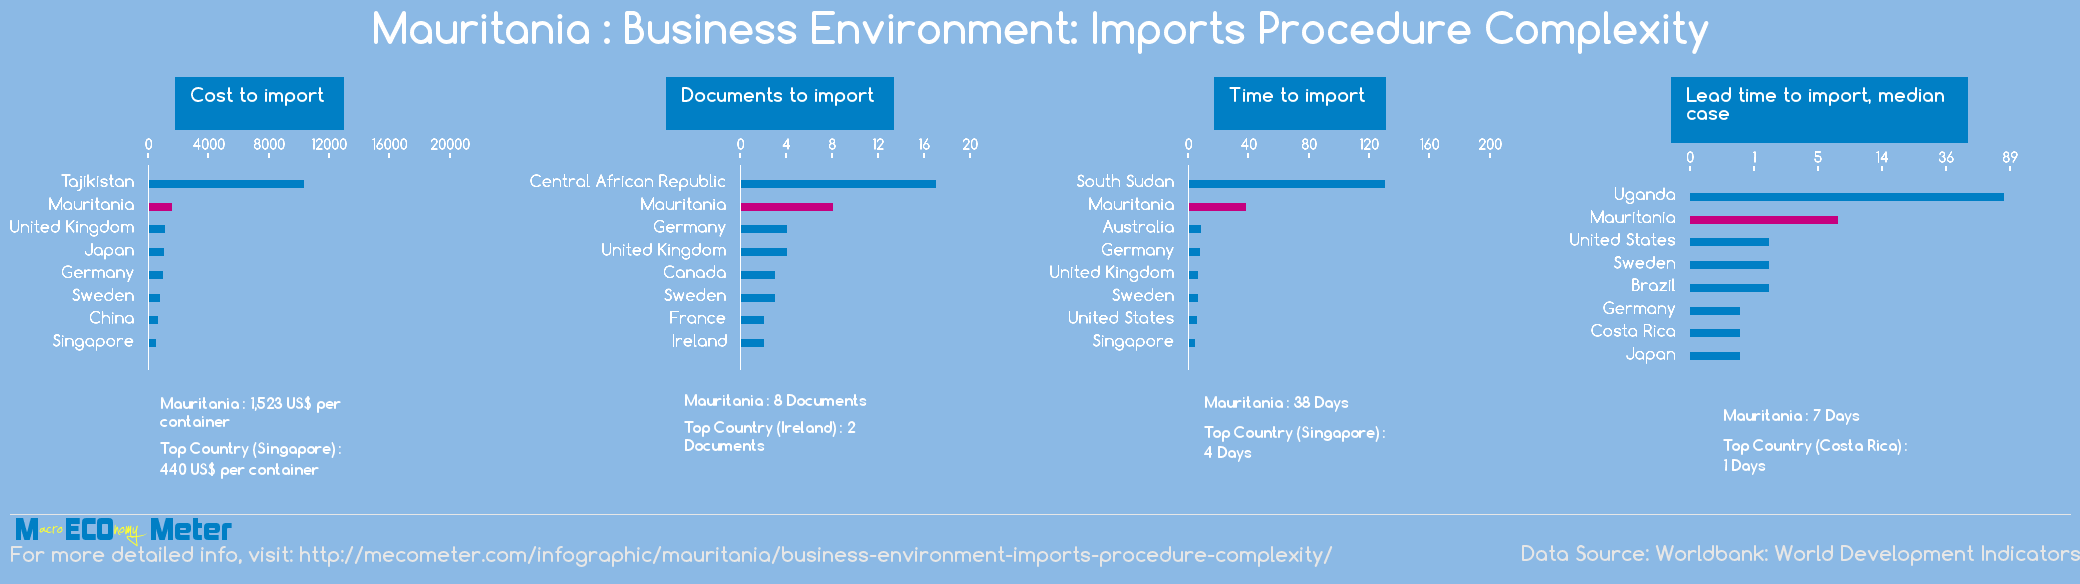 Mauritania : Business Environment: Imports Procedure Complexity